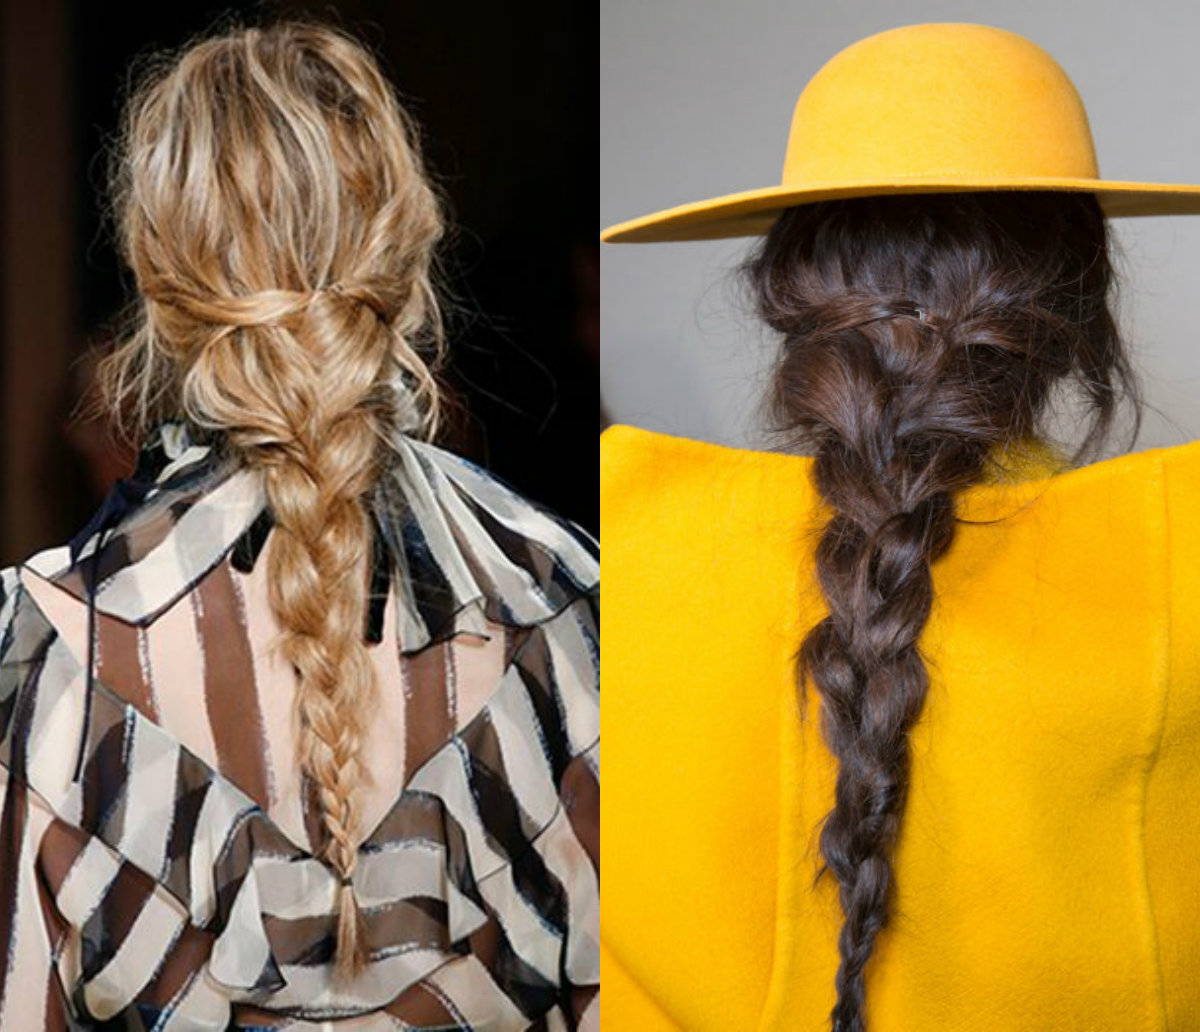 Alberta Ferretti braids hairstyles 2017 fall